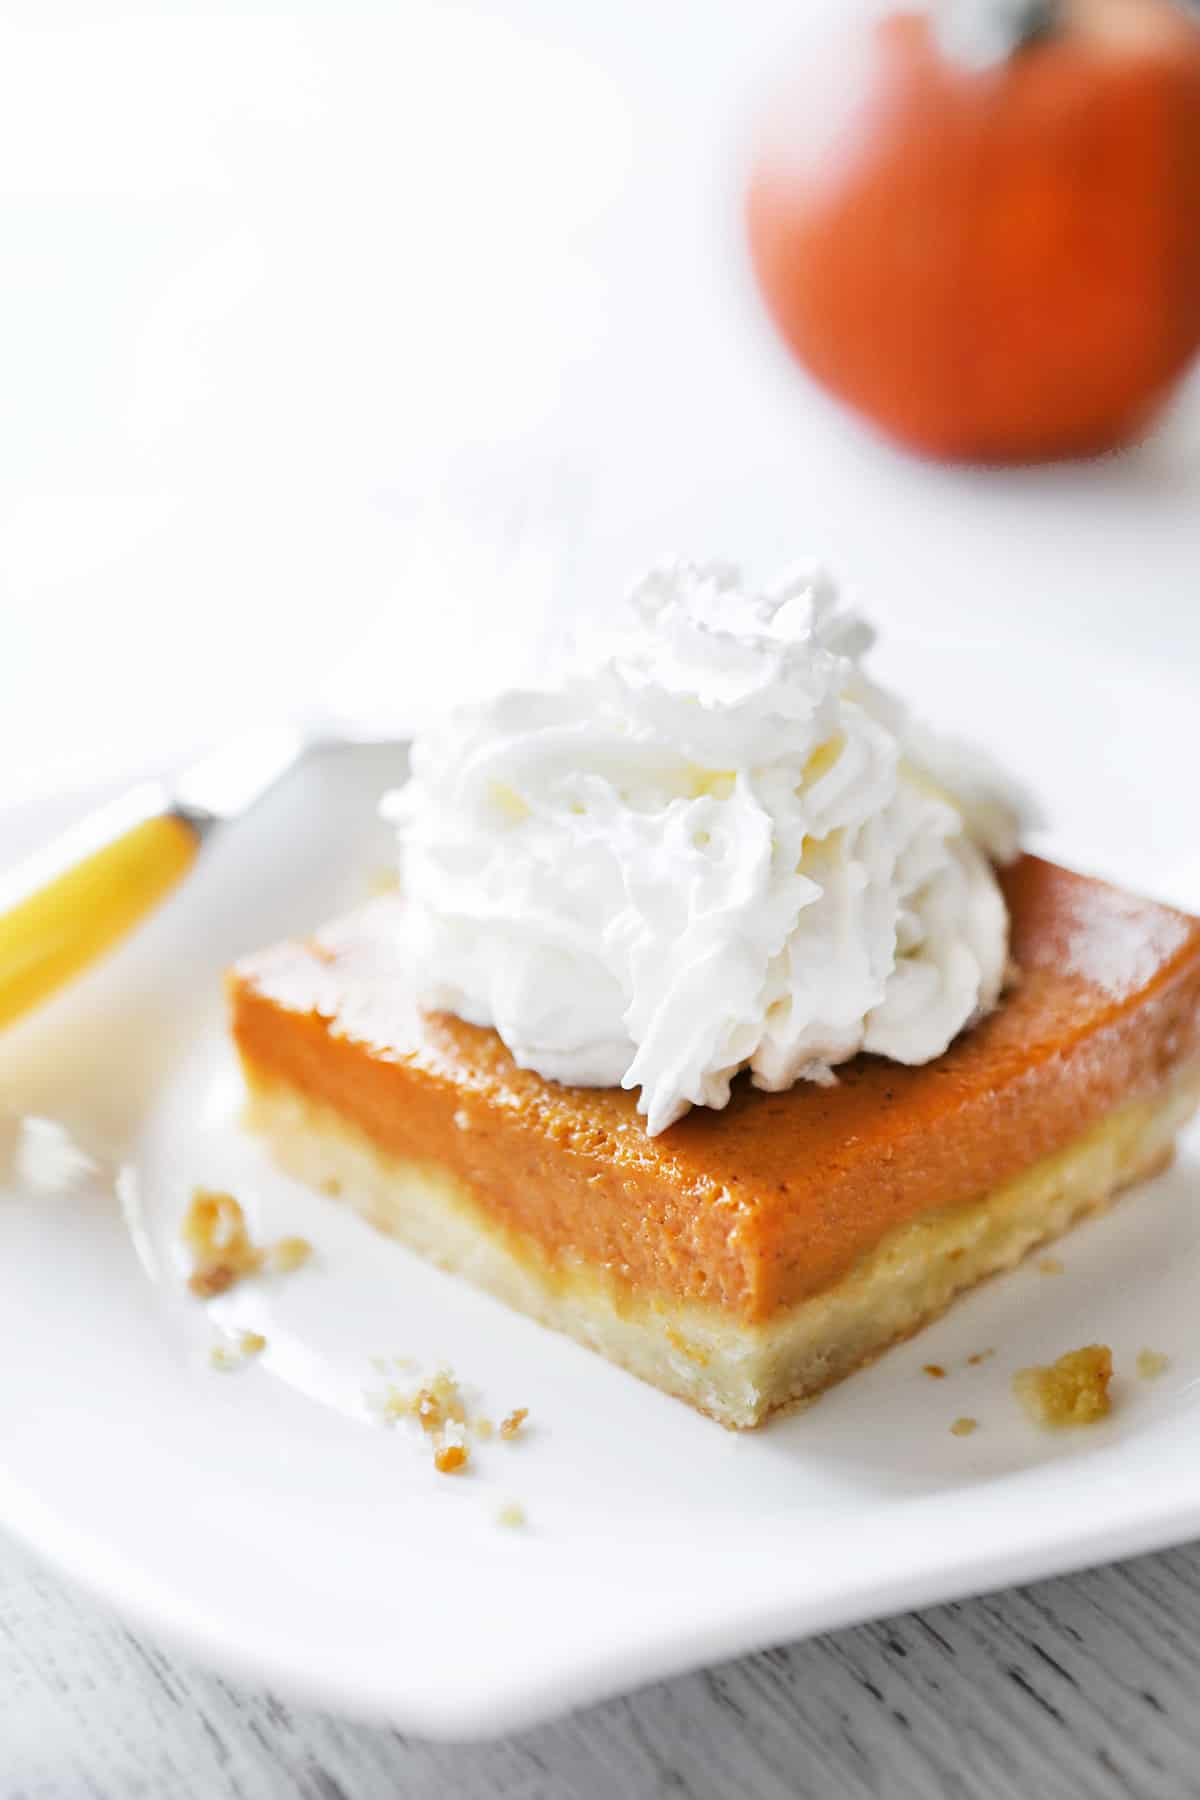 Pumpkin pie square on a plate with a fork sitting next to it.